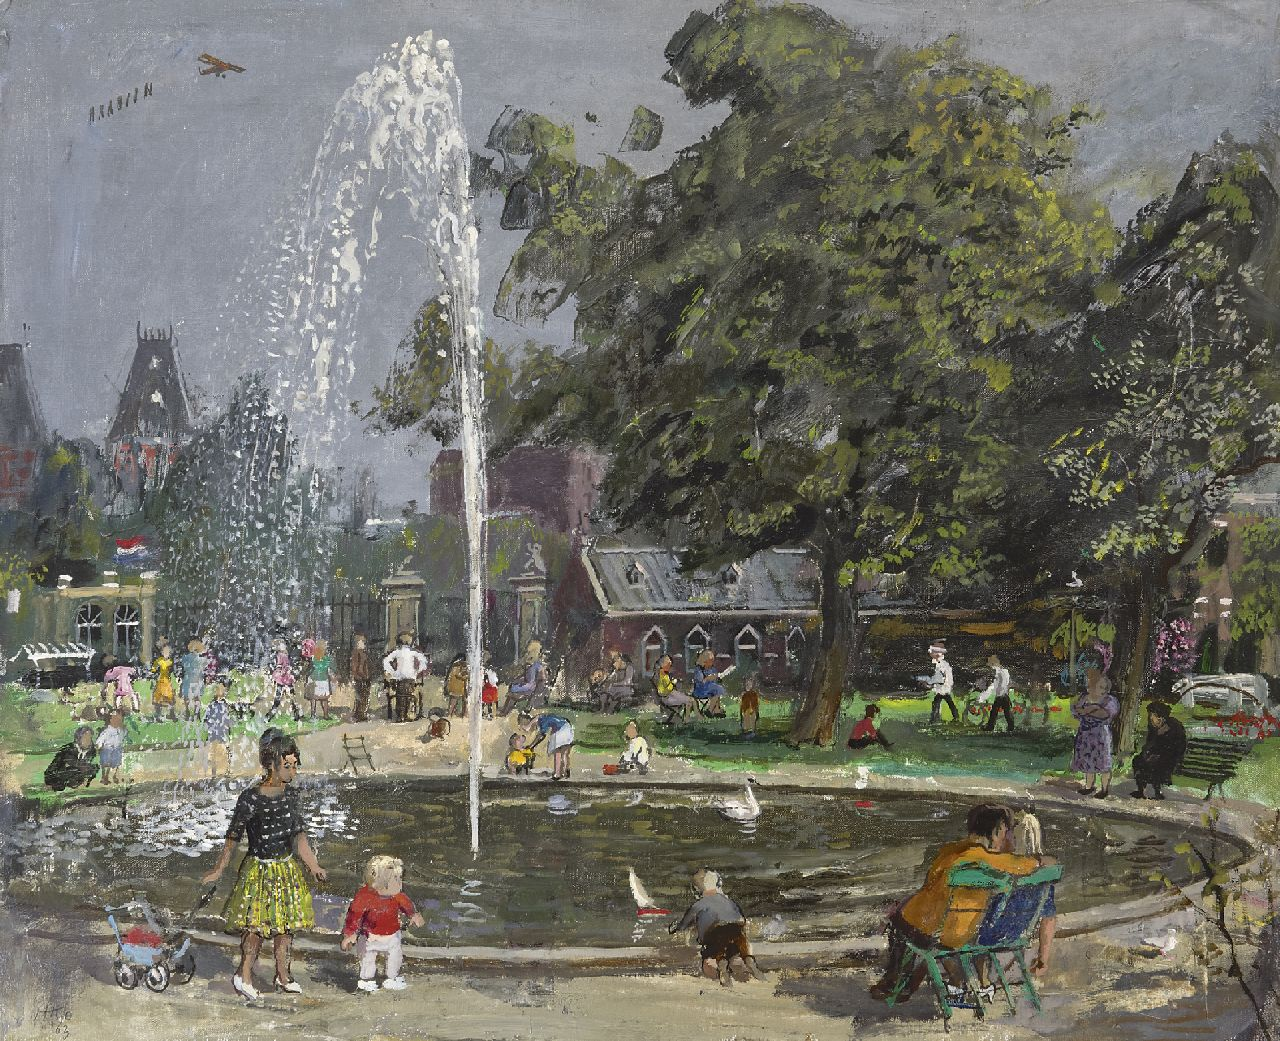 Kamerlingh Onnes H.H.  | 'Harm' Henrick Kamerlingh Onnes | Paintings offered for sale | A summer afternoon in the park, oil on canvas 50.4 x 61.2 cm, signed l.l. with monogram and dated '63